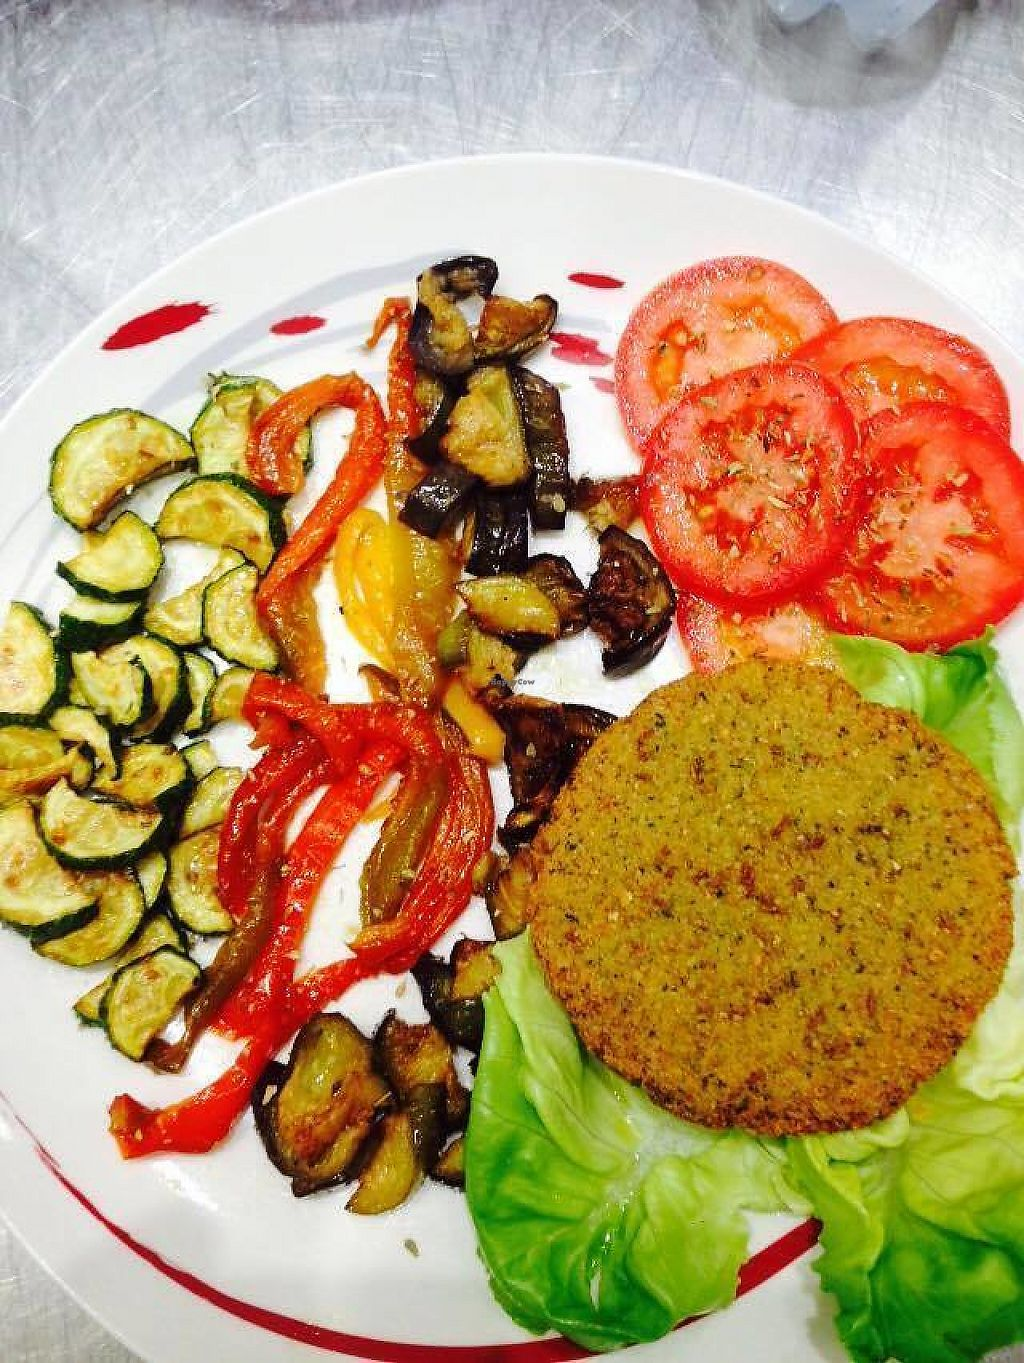 """Photo of Bar Meeting  by <a href=""""/members/profile/community5"""">community5</a> <br/>Falafel burger with mixed vegetables <br/> May 19, 2017  - <a href='/contact/abuse/image/92477/260470'>Report</a>"""